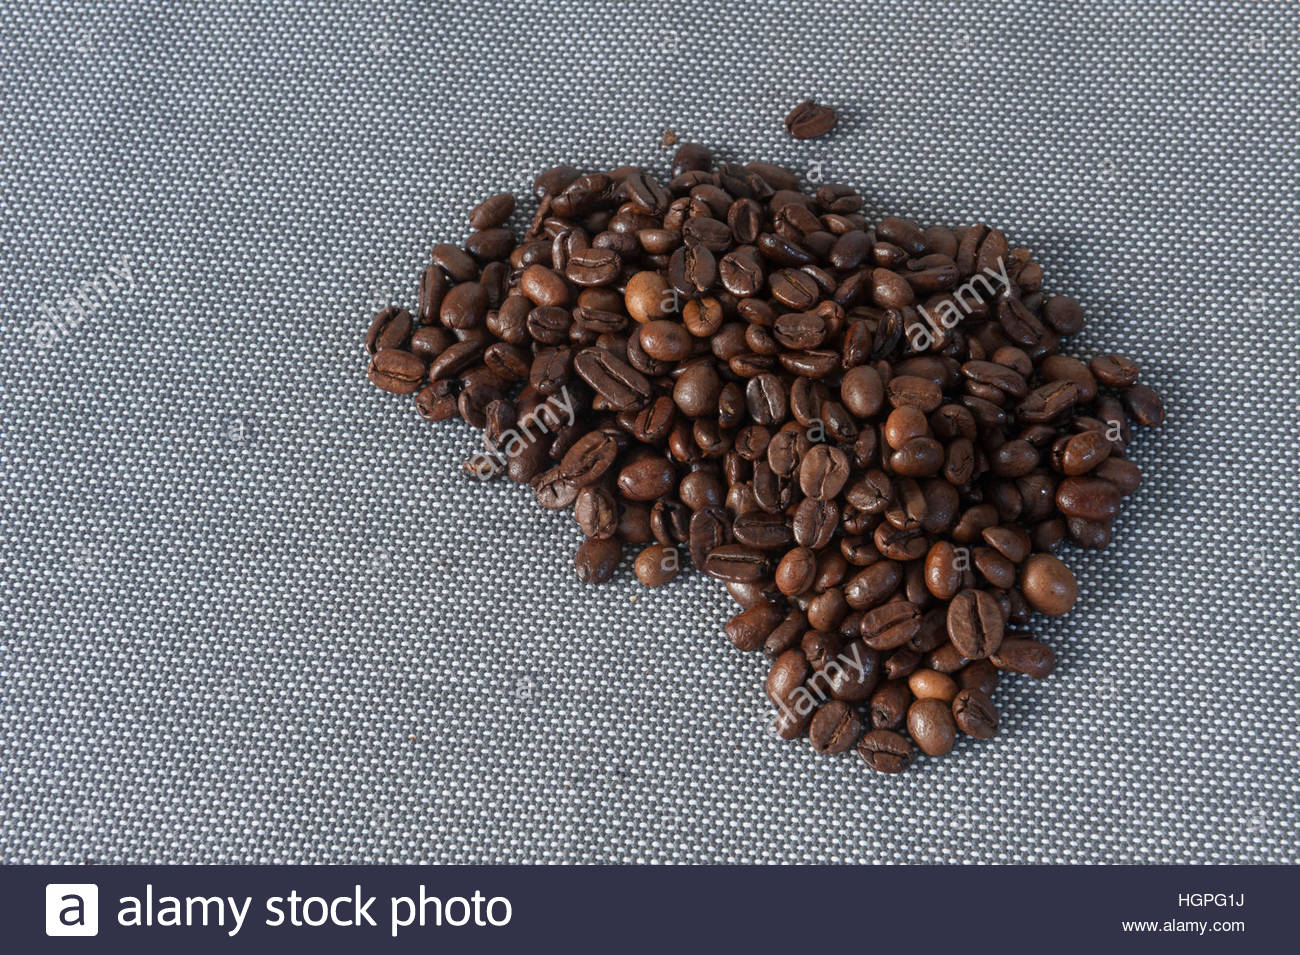 Coffee beans pile on a blue table mat - Stock Image